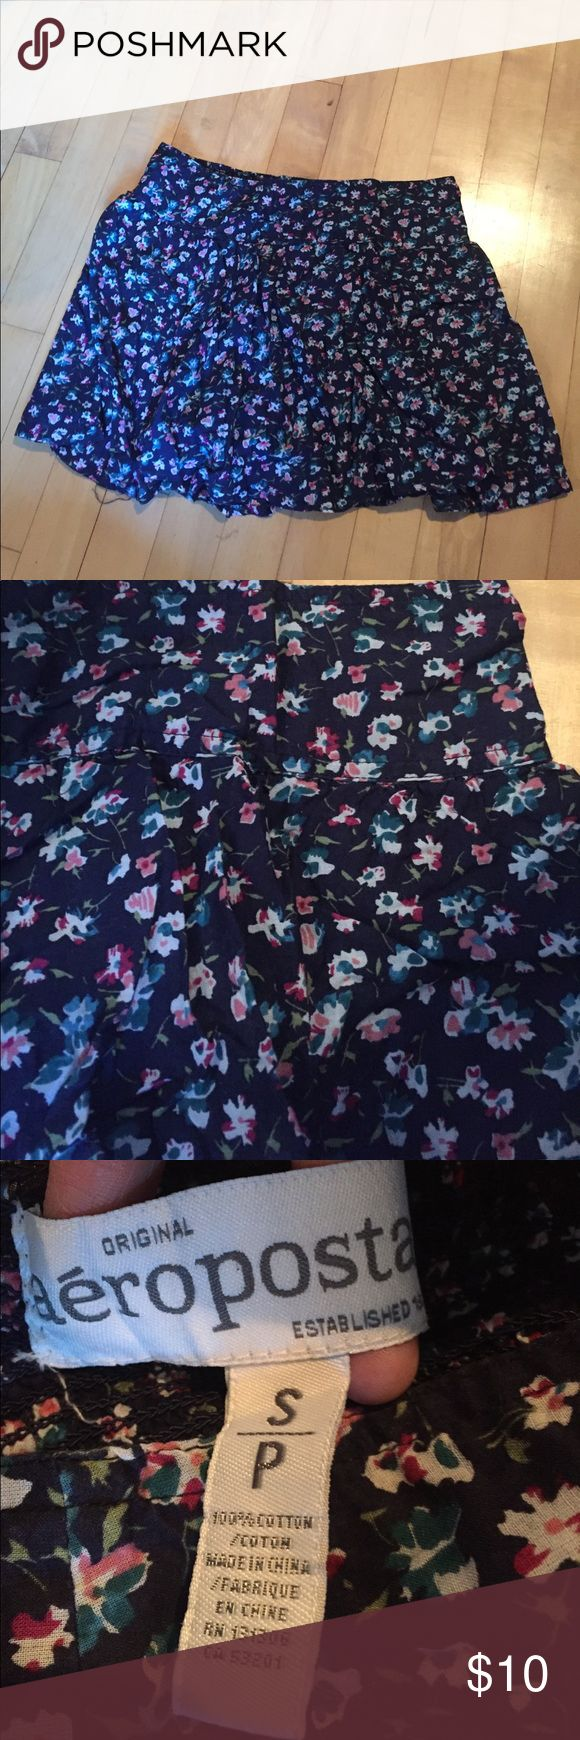 Aeropostale floral skirt cotton small Aeropostale skirt. Women's small. Floral print with navy base. 100% cotton. Pre-loved, but no stains or tears. Any questions please ask! Aeropostale Skirts